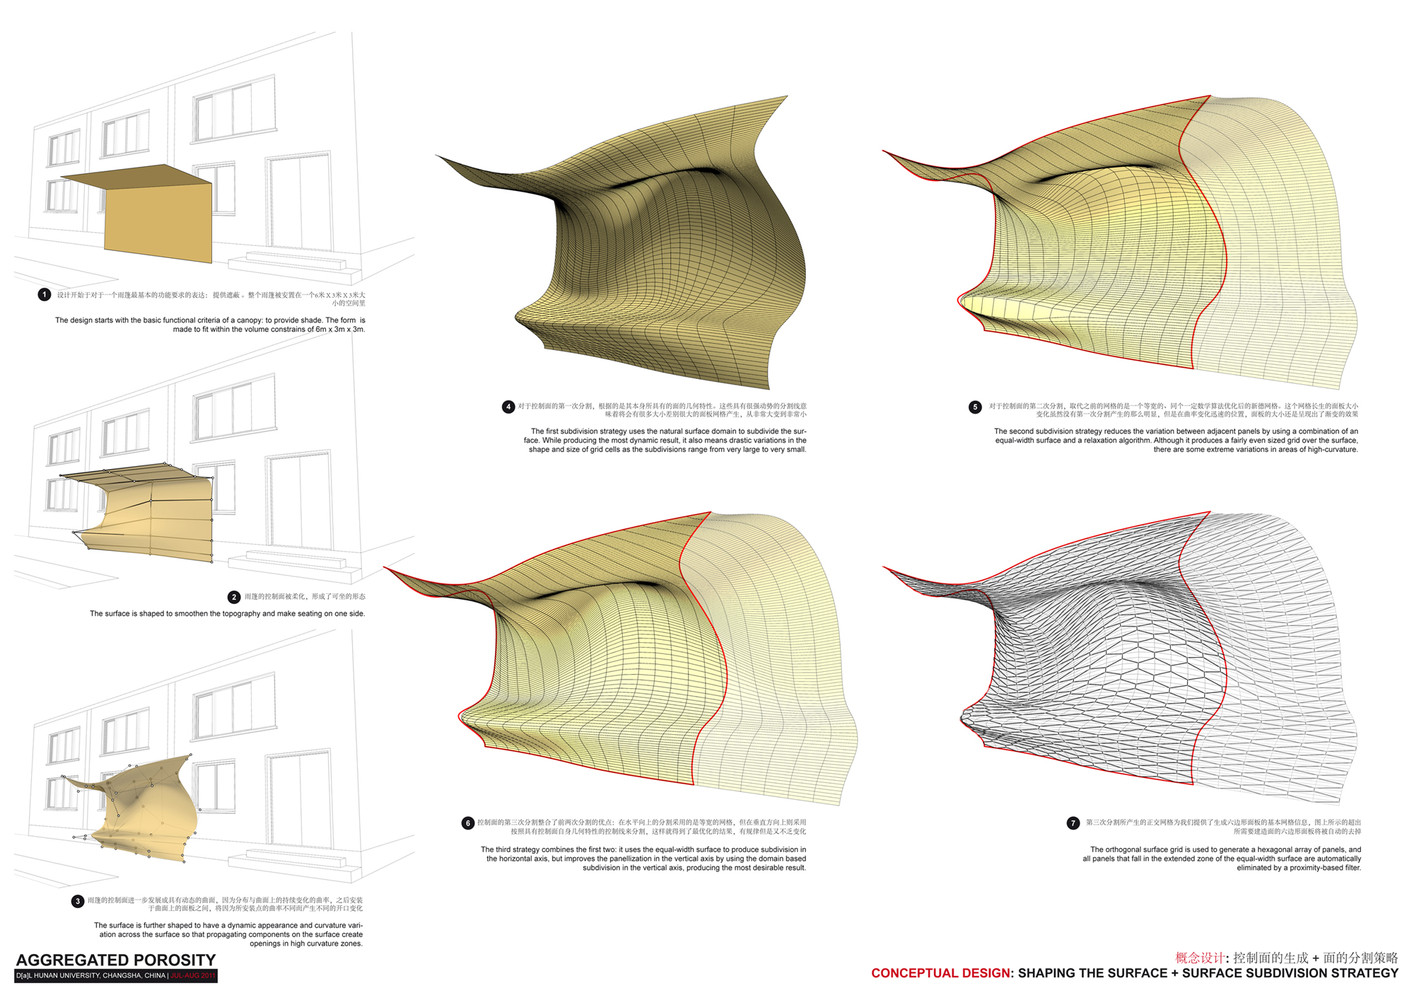 DAL Canopy DesignDesign Process  sc 1 st  ArchDaily & Gallery of DAL Canopy Design / Digital Architectural Lab - 18